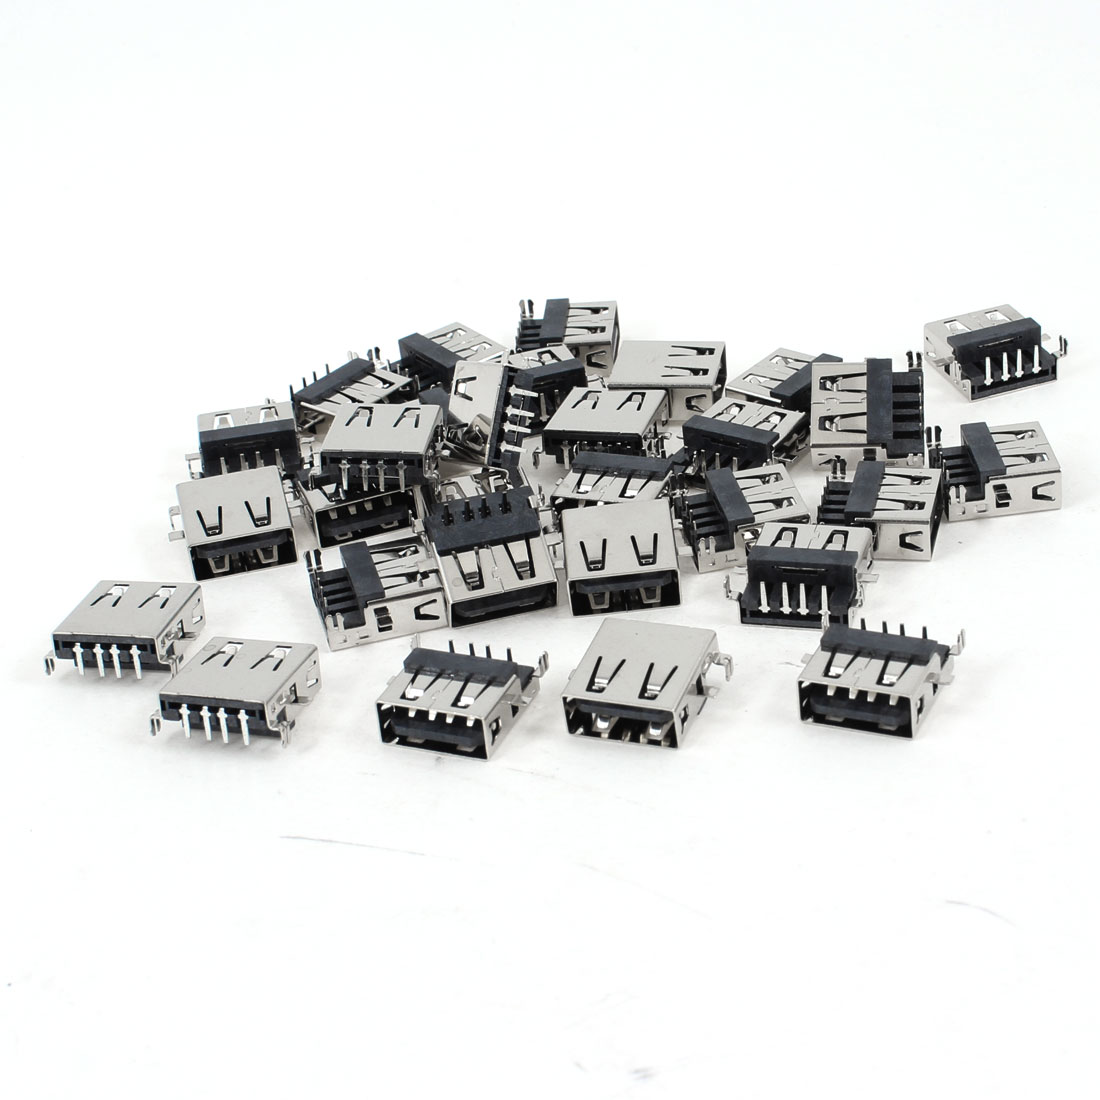 30 Pcs Single USB 2.0 Type A 90 Degree 4-Pin DIP Female Jack Socket